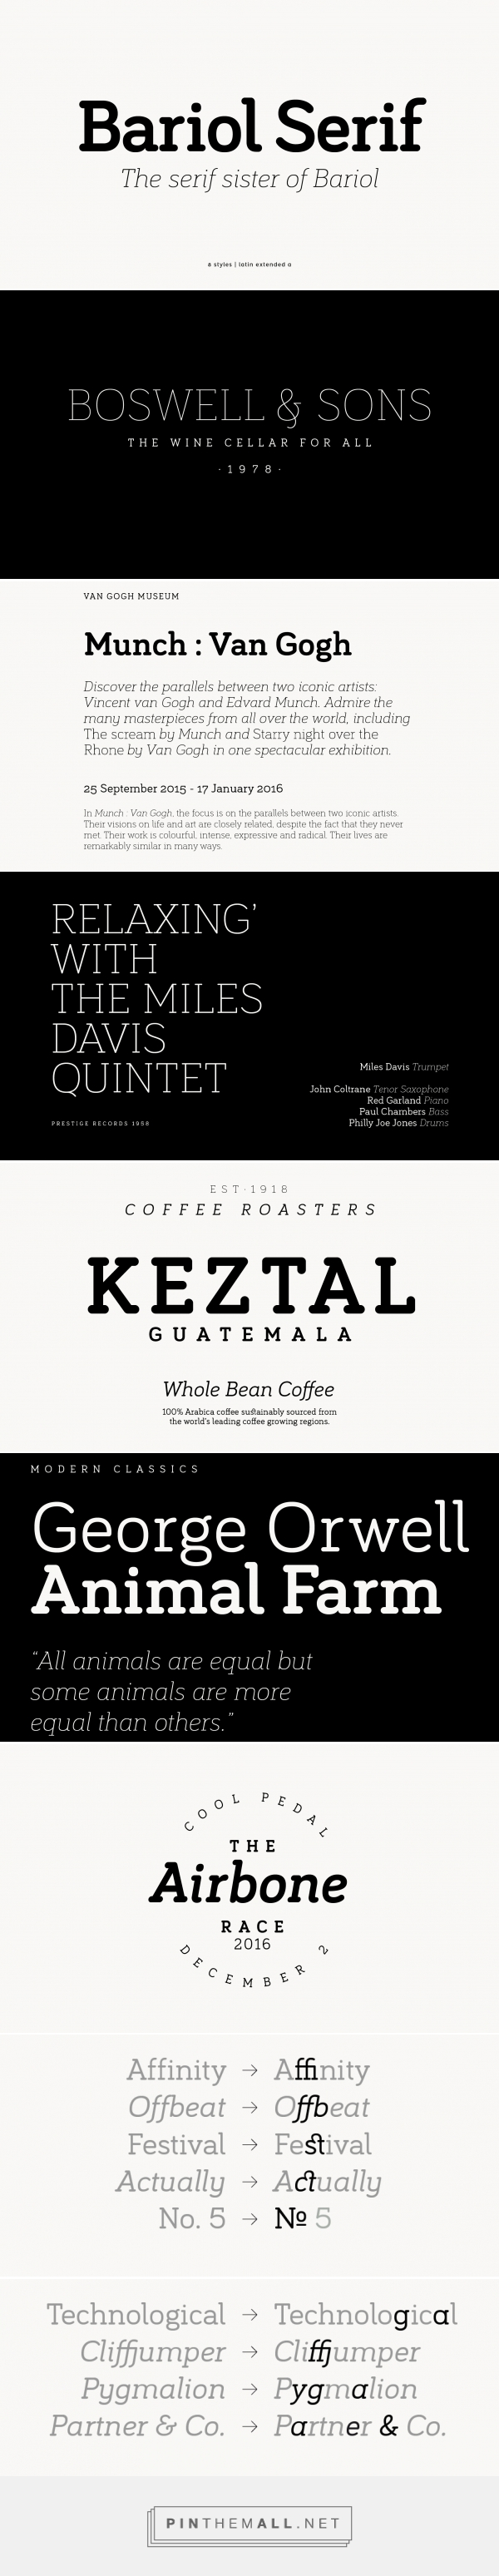 bariol serif | atipo foundry... - a grouped images picture - Pin Them All